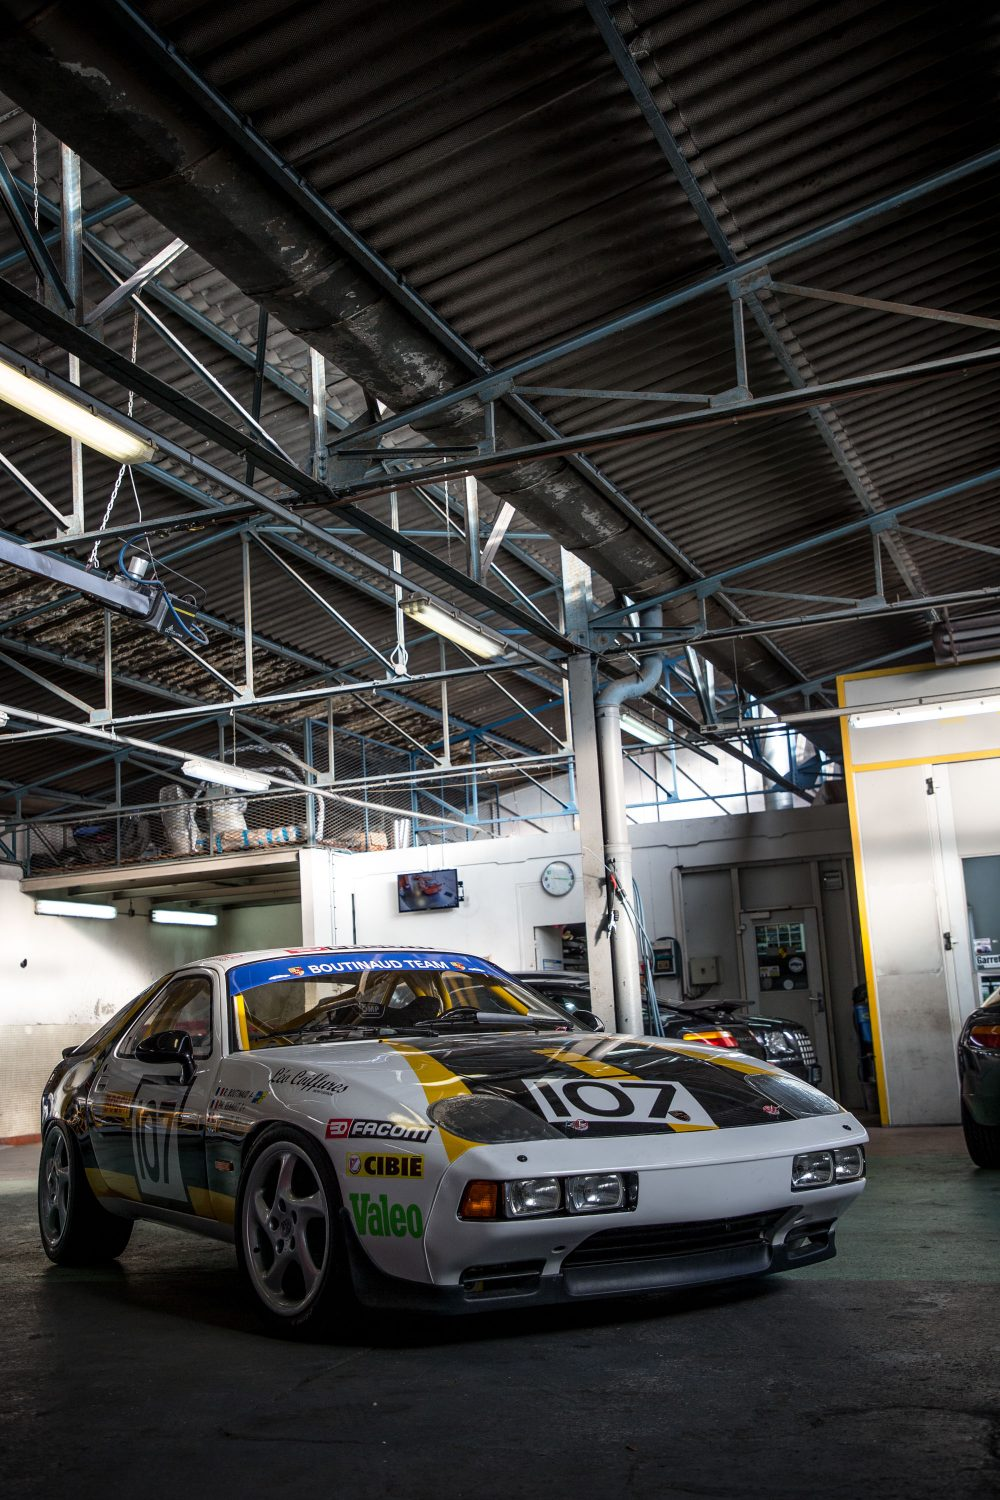 Restoring The Only Porsche 928 That Ever Raced At The 24 Hours Of Le